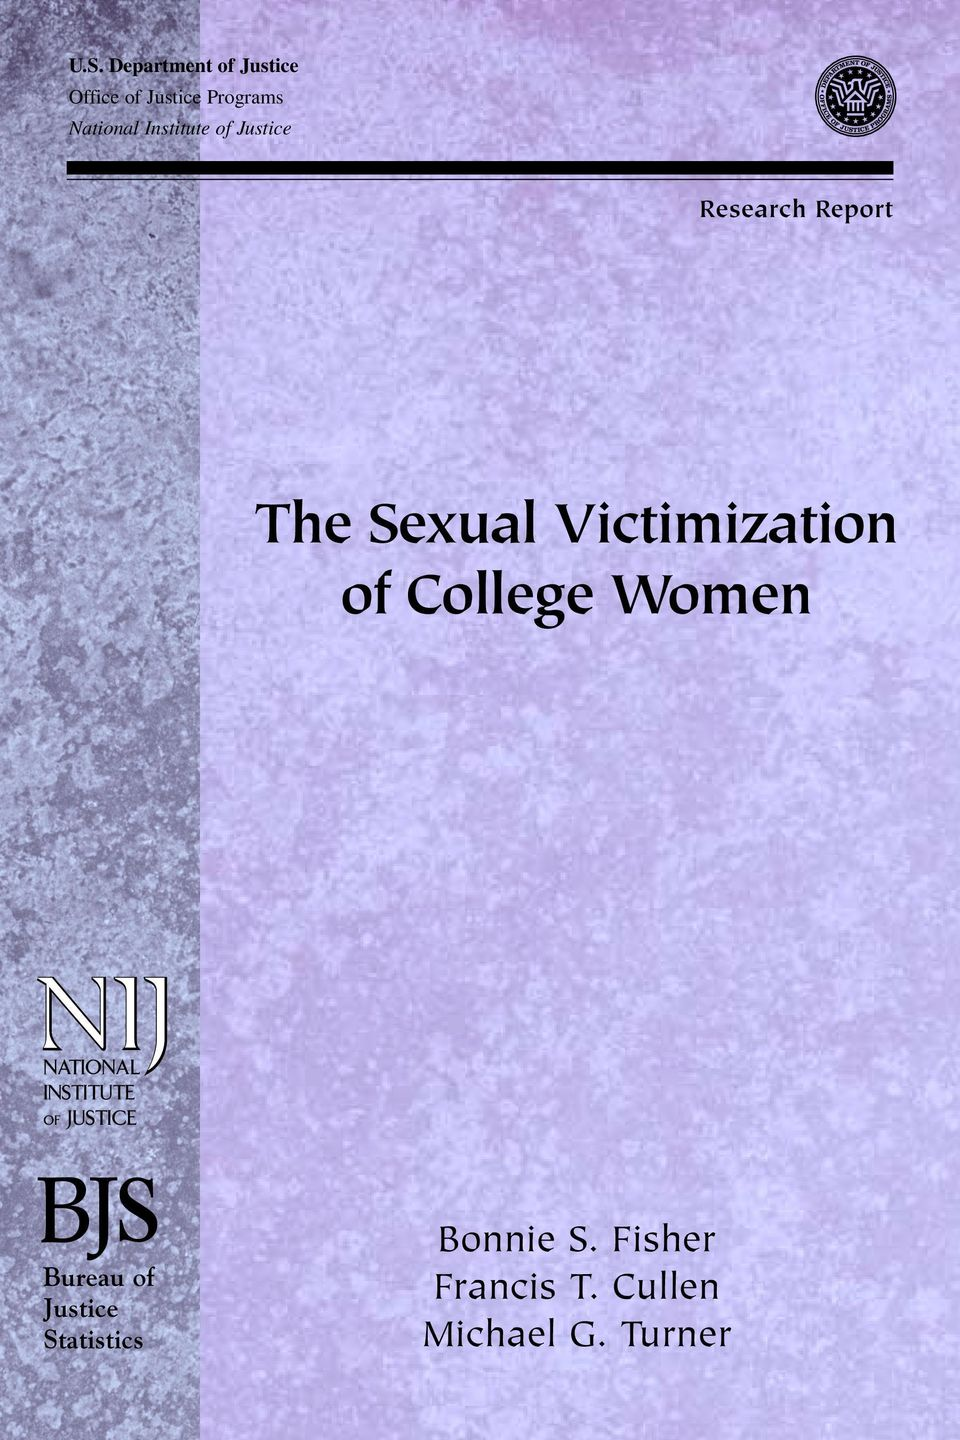 Sexual Victimization of College Women Bureau of Justice